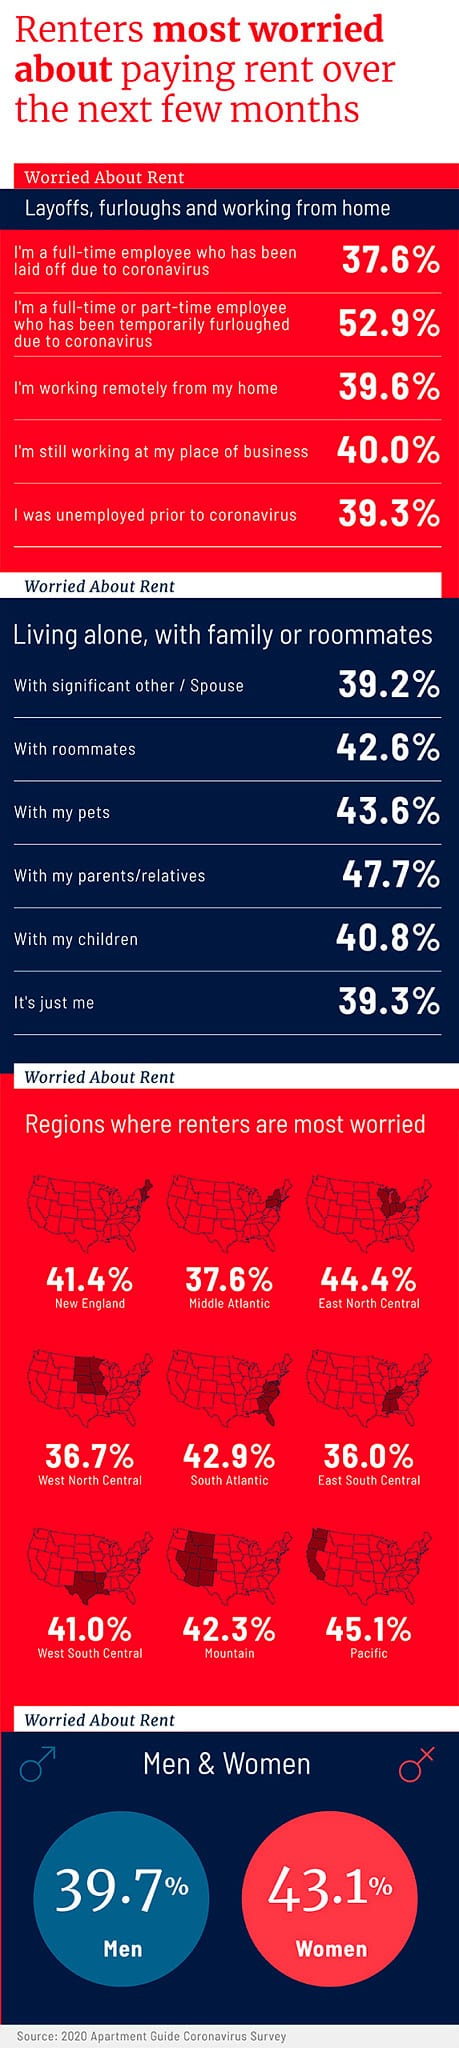 renters most worried about paying rent over the next few months graphic